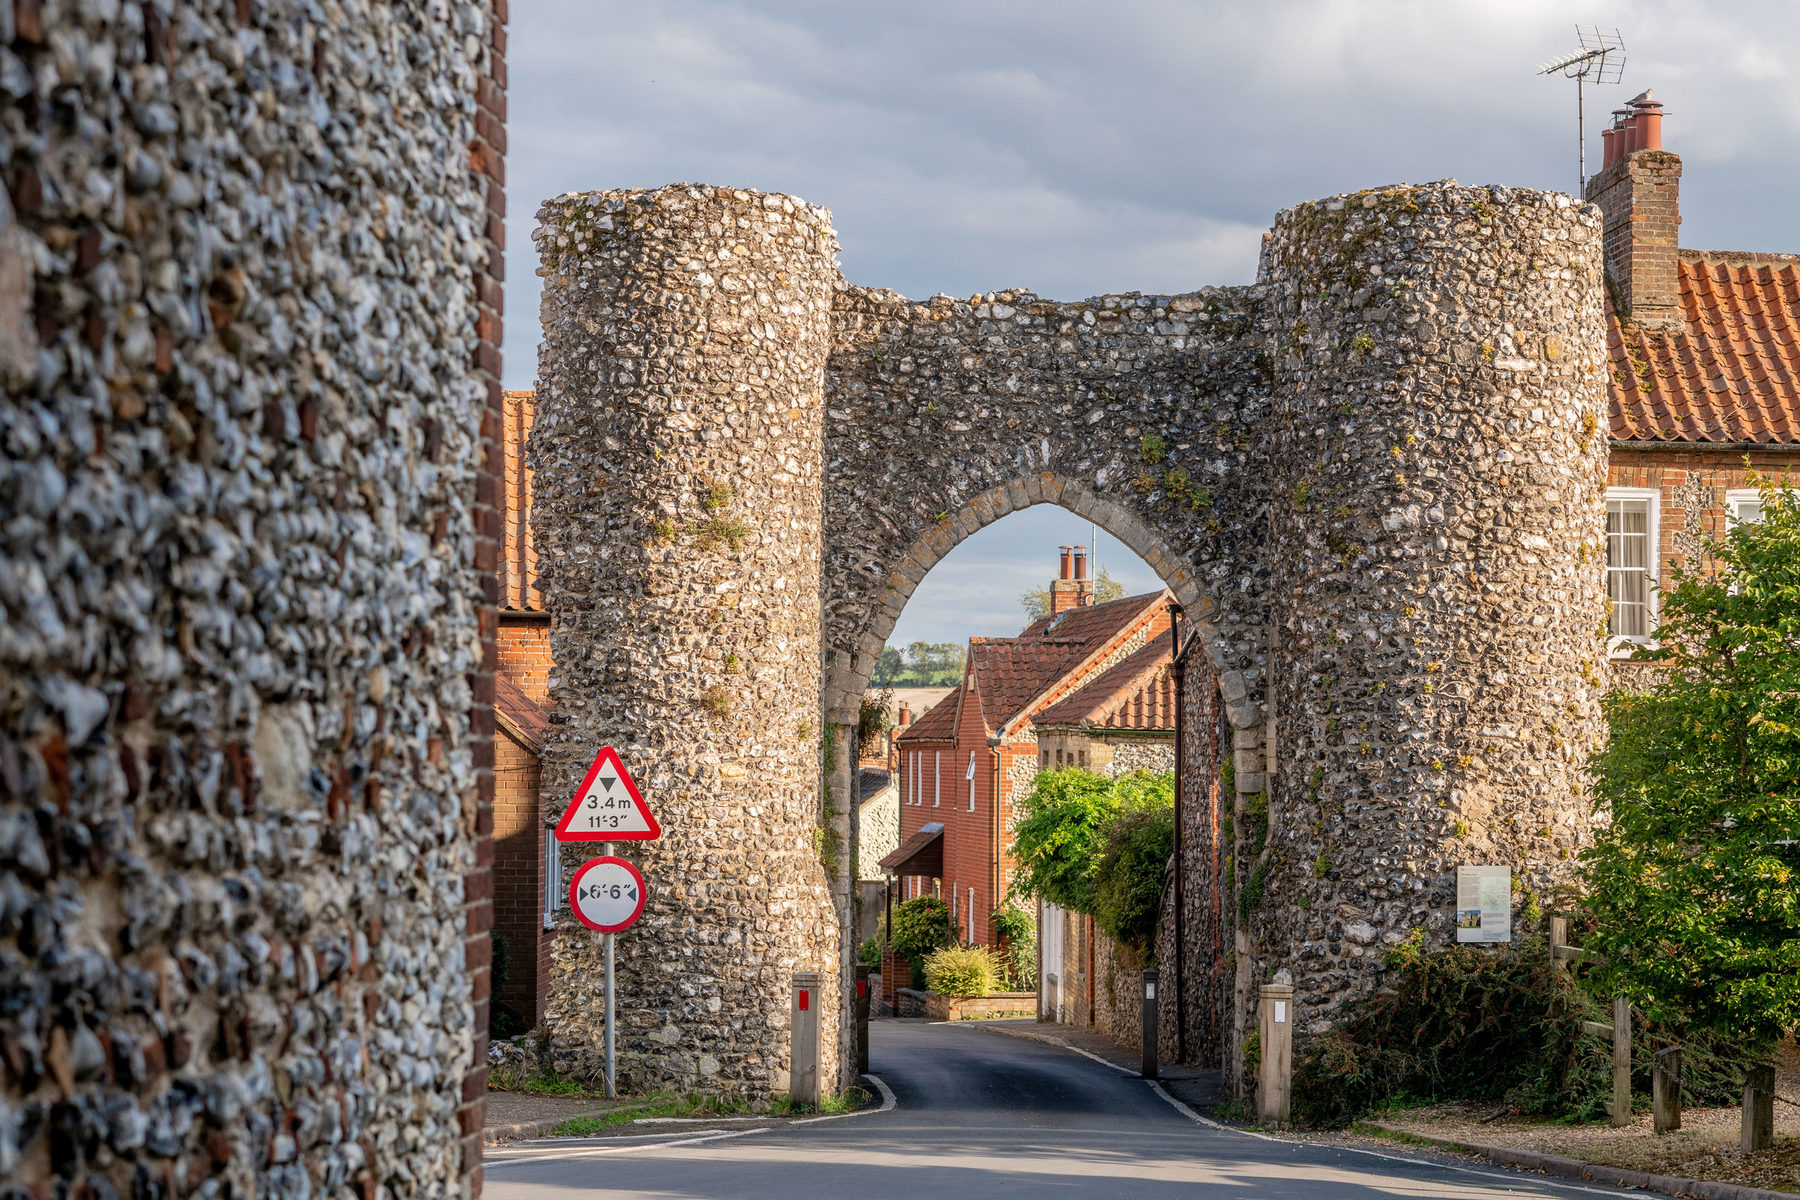 014 Castle Acre Village 2018